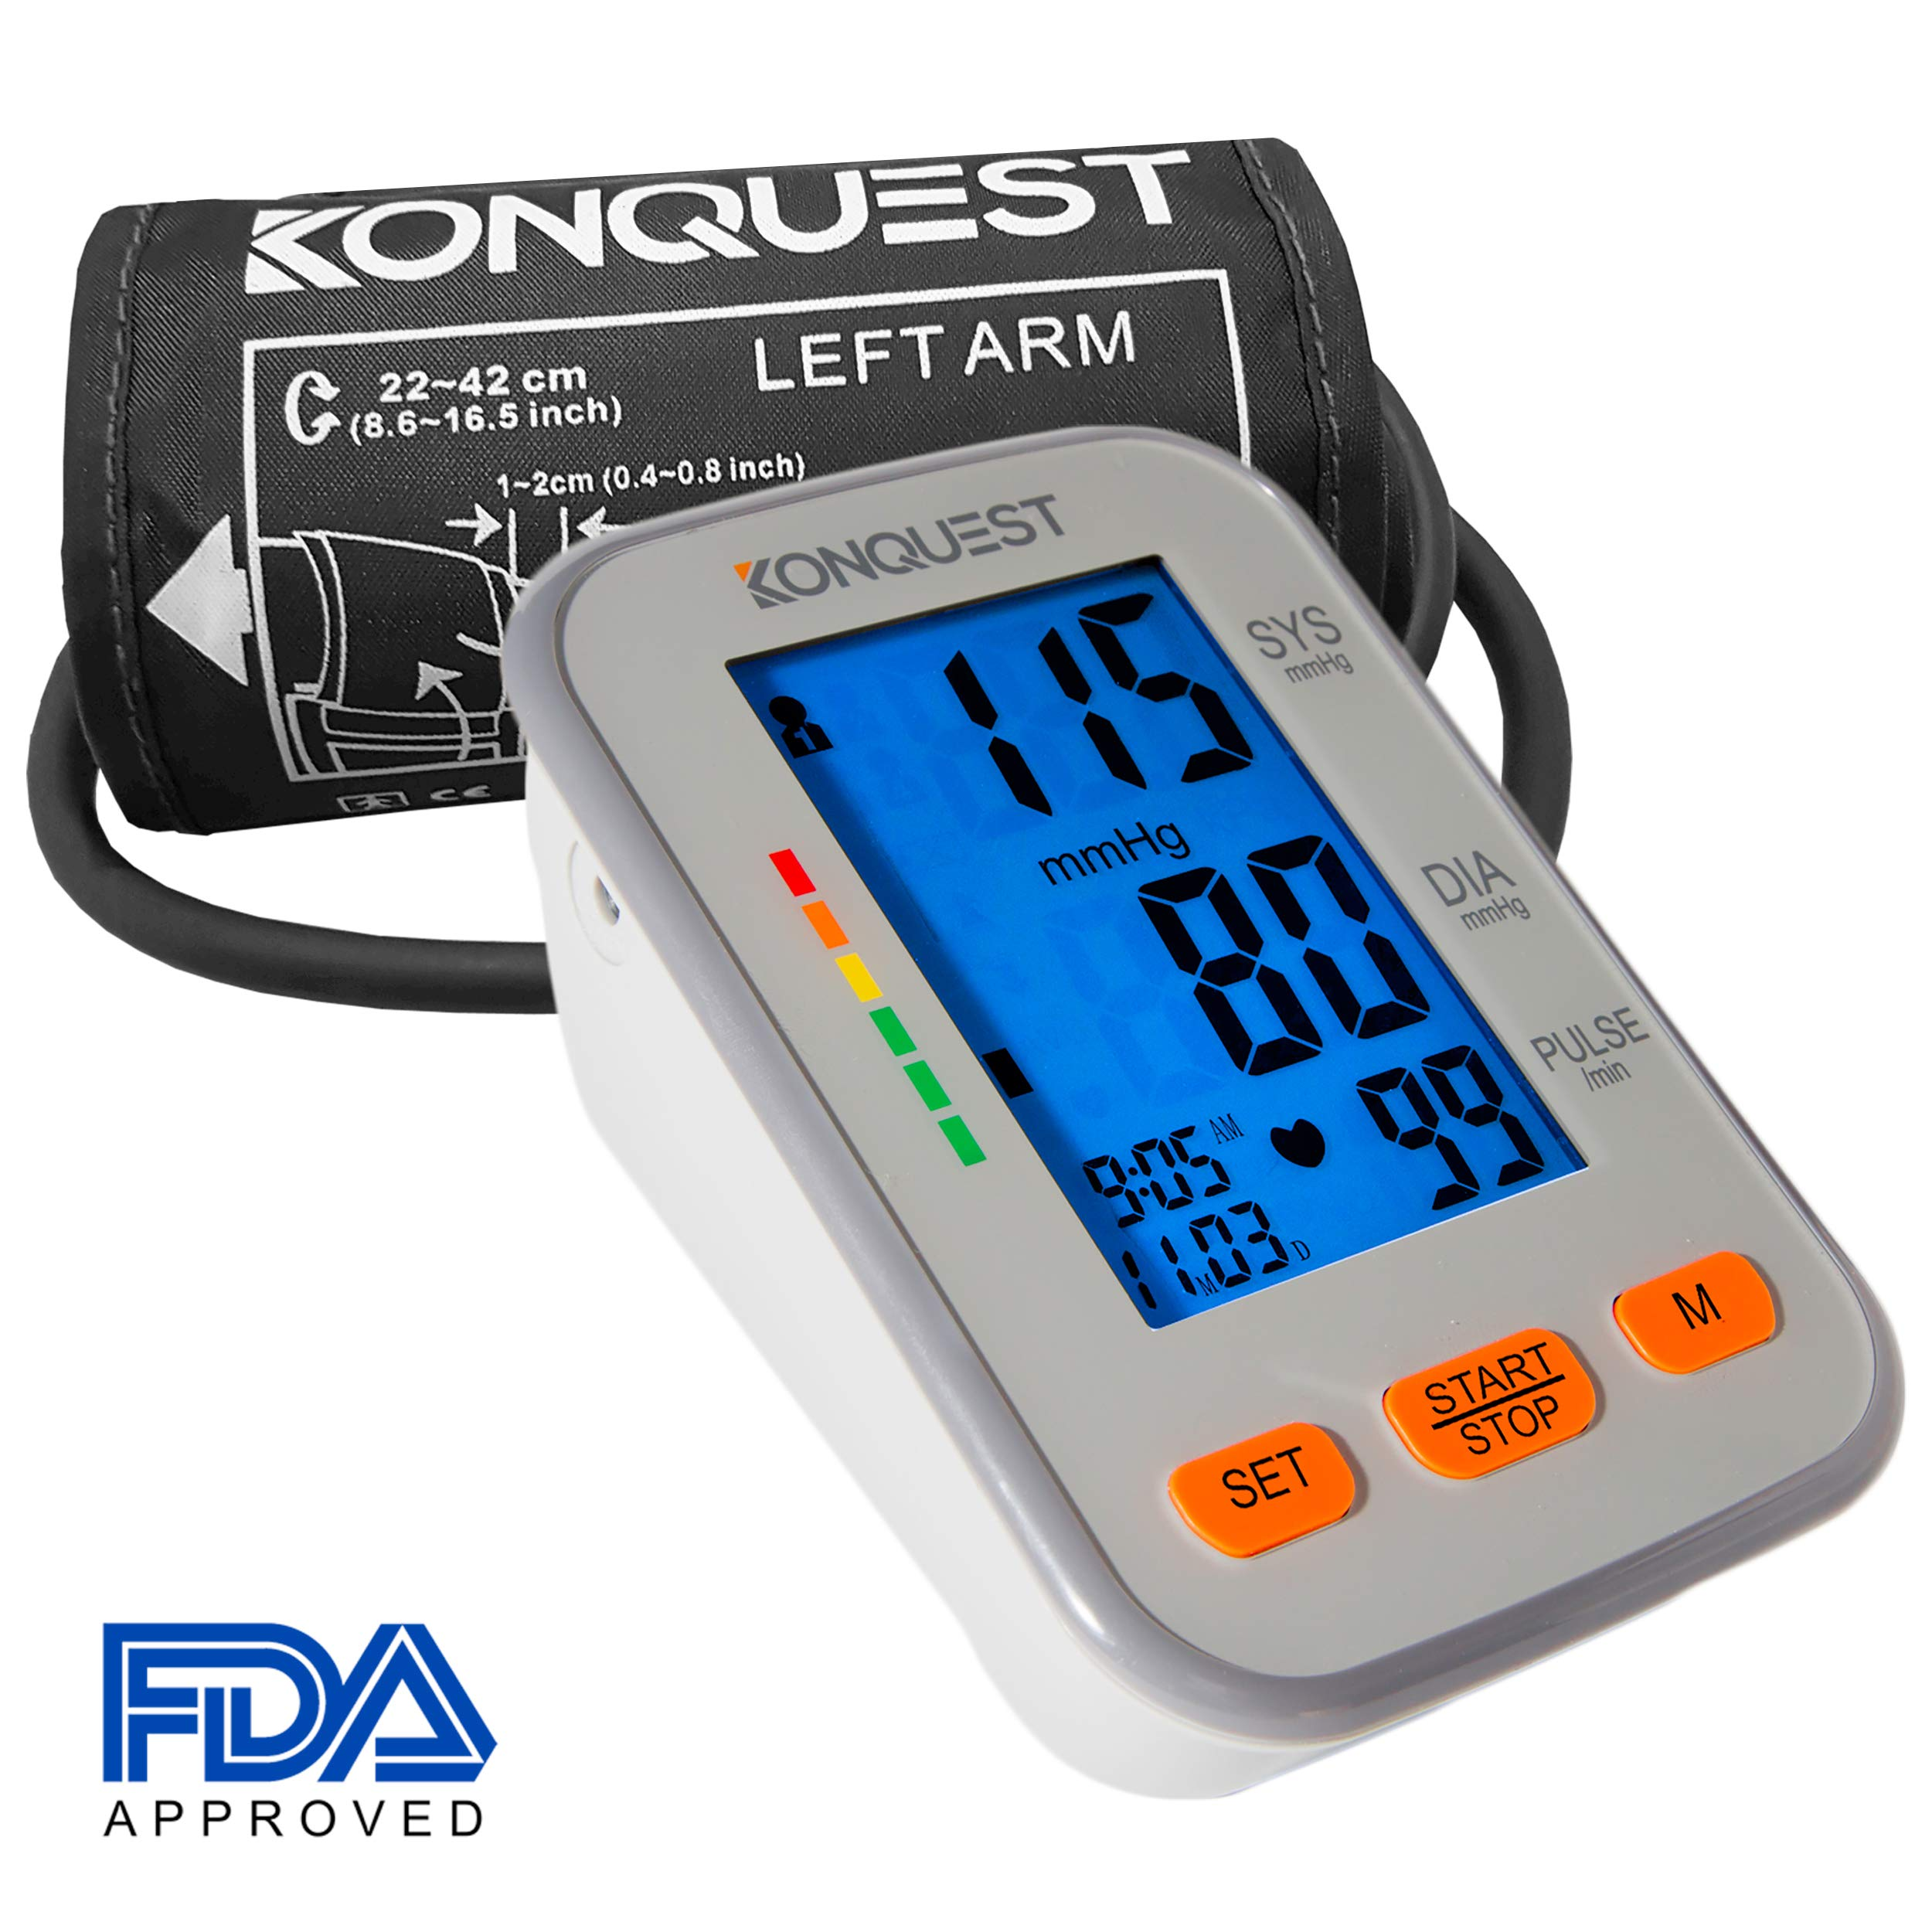 Konquest KBP-2704A Automatic Upper Arm Blood Pressure Monitor - Accurate, FDA Approved - Adjustable Cuff, Large Screen Display, Portable Case - Irregular Heartbeat & Hypertension Detector